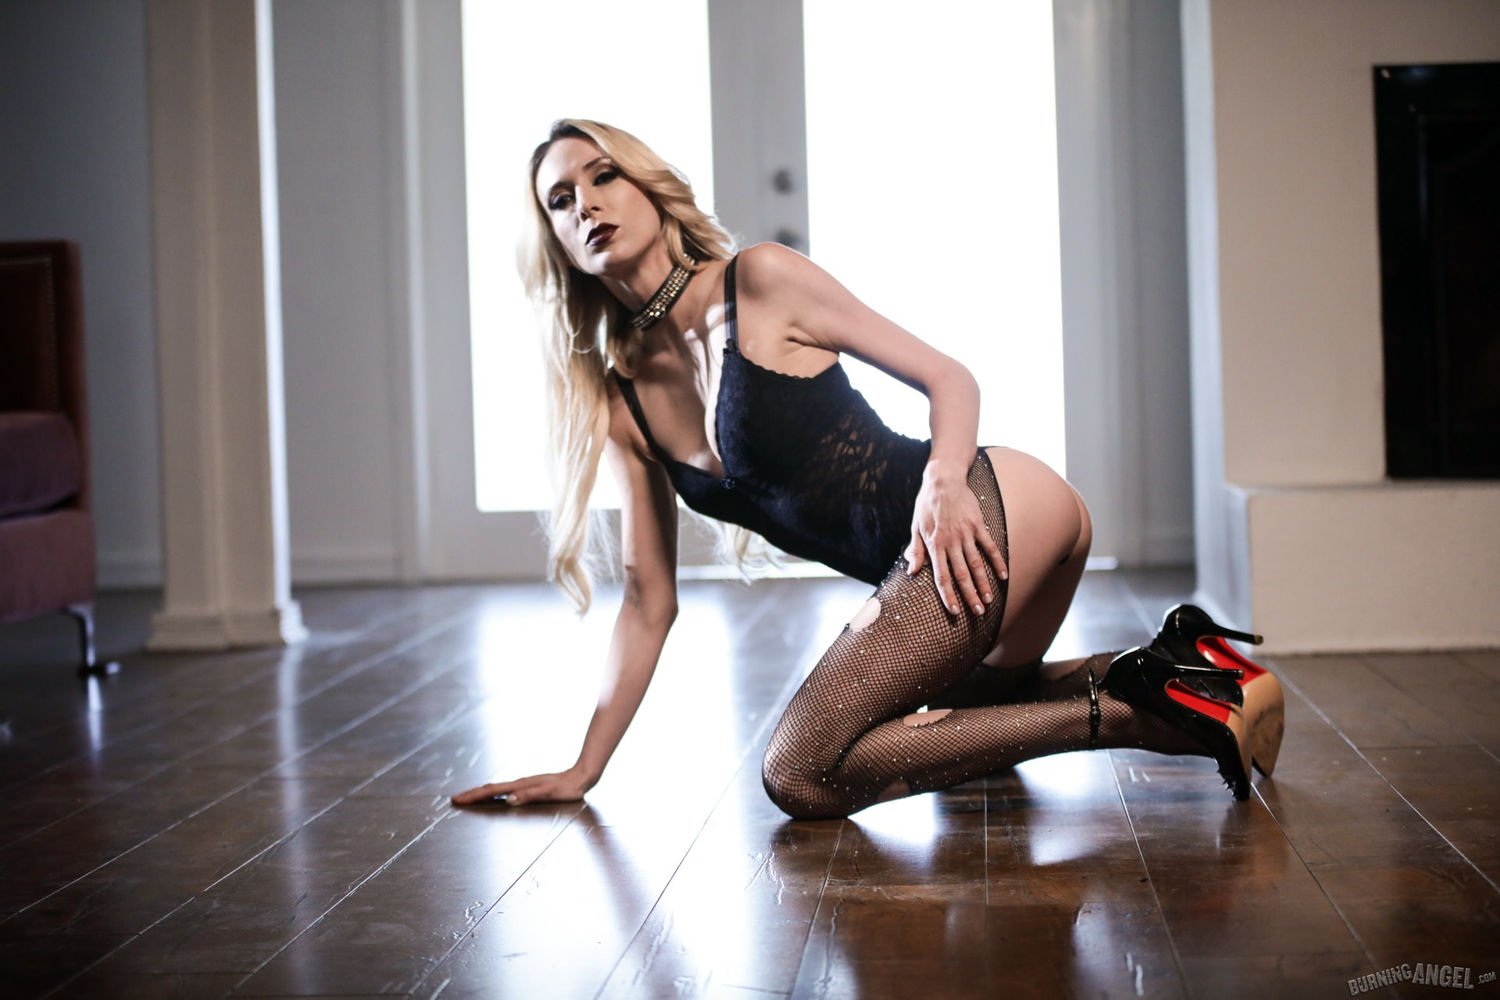 Non nude blonde alt pornstar Aiden Ashley in fishnet pantyhose and lace bodysuit wearing Loubout ...